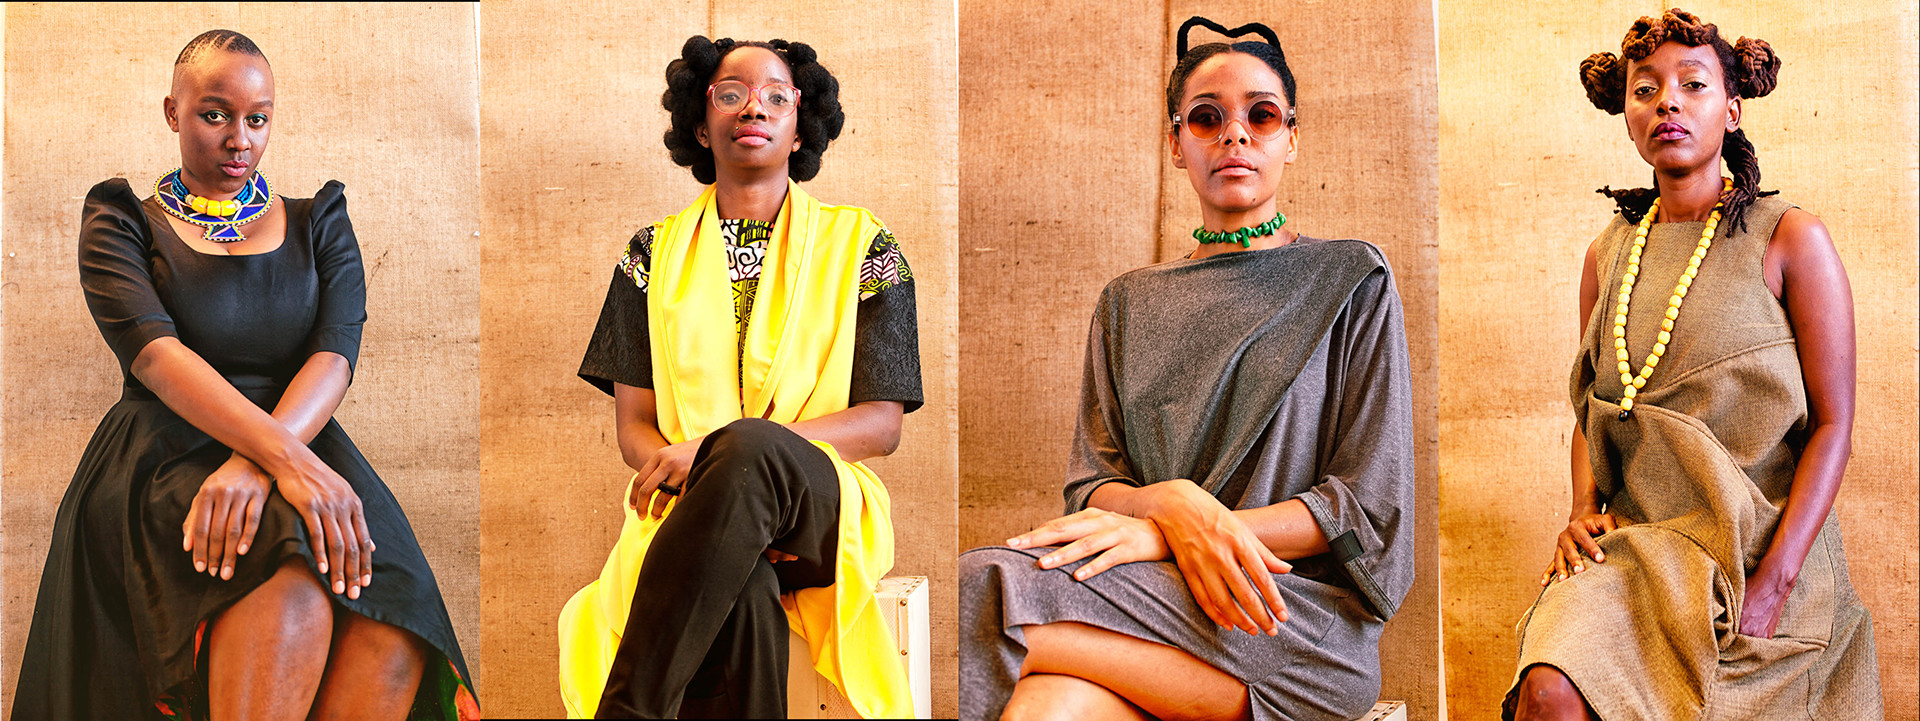 Artists Are Using The Lens To Look Into The Amazing Evolution Of African Hair